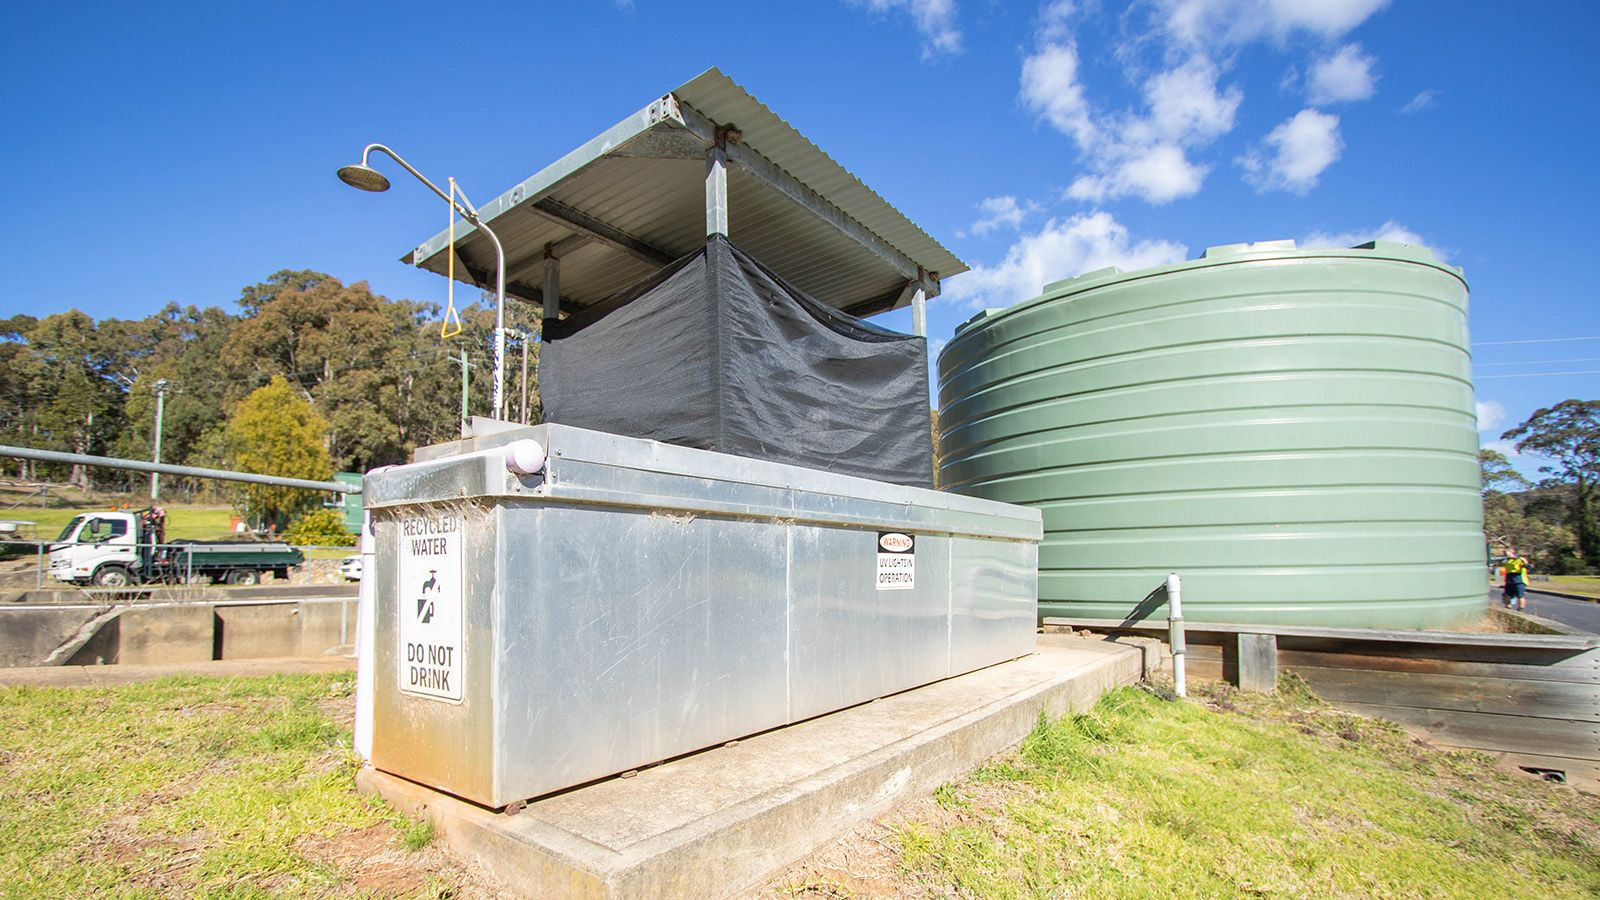 Recycled water container and large tank at a Eurobodalla Council sewer treatment facility banner image